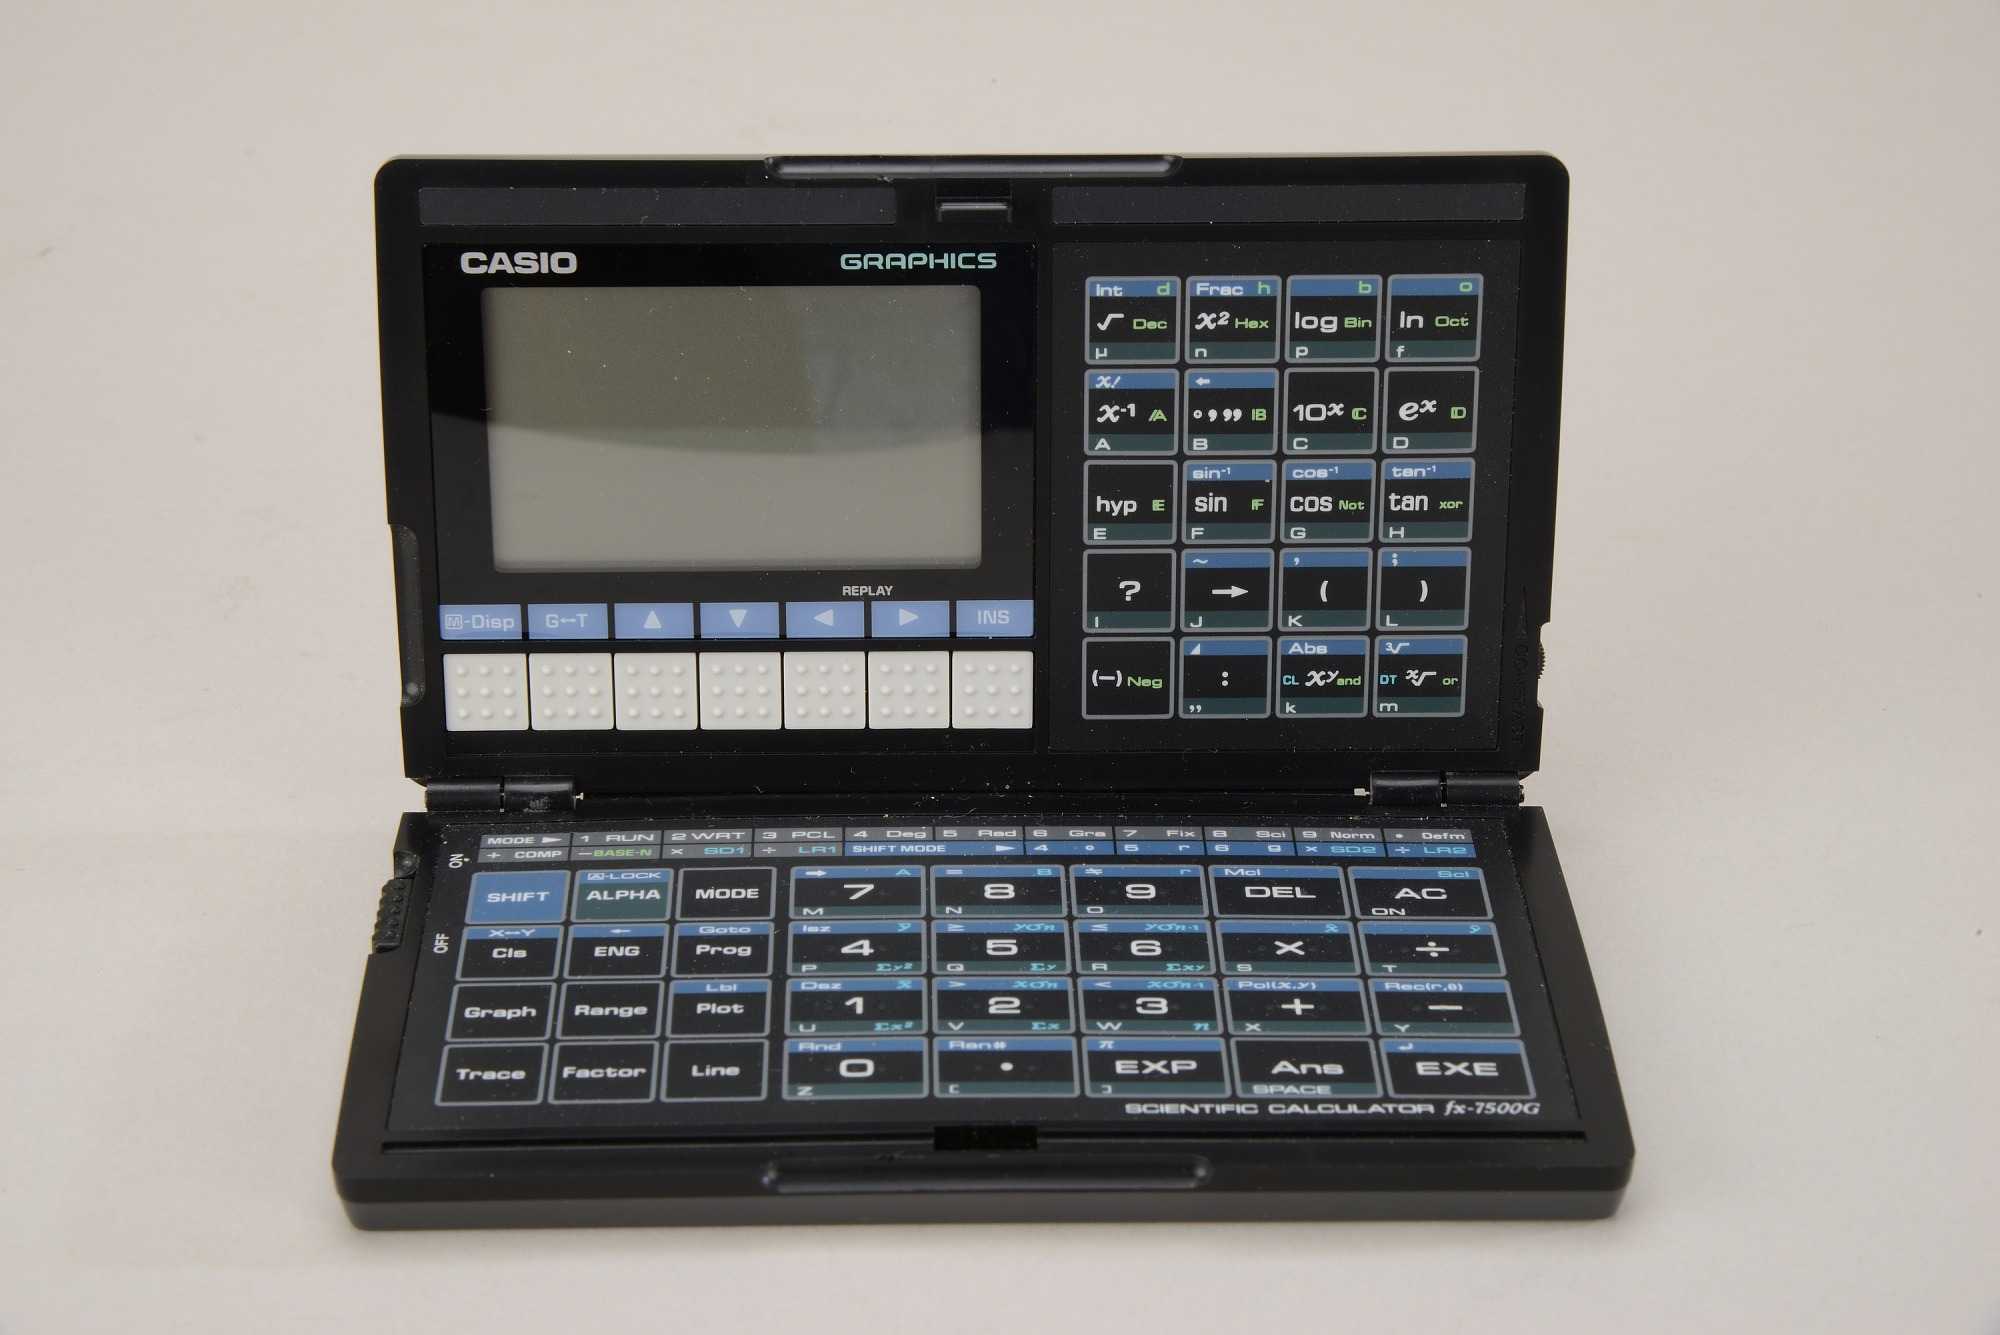 Casio fx-7500G Handheld Electronic Calculator with Manual